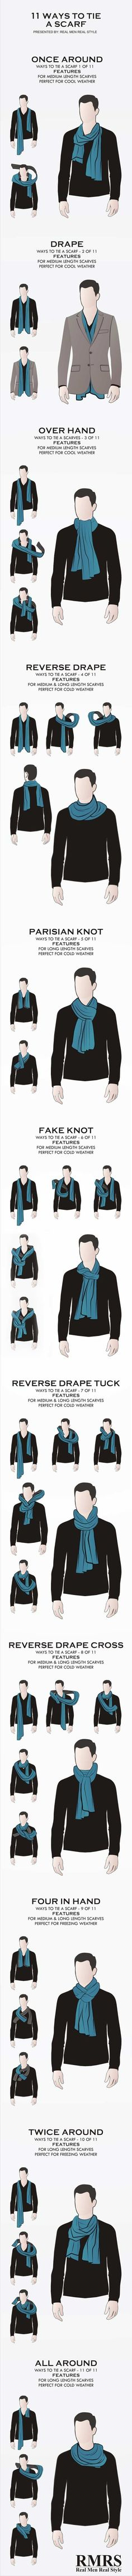 11-ways-to-tie-mans-scarf-infographic-rmrs